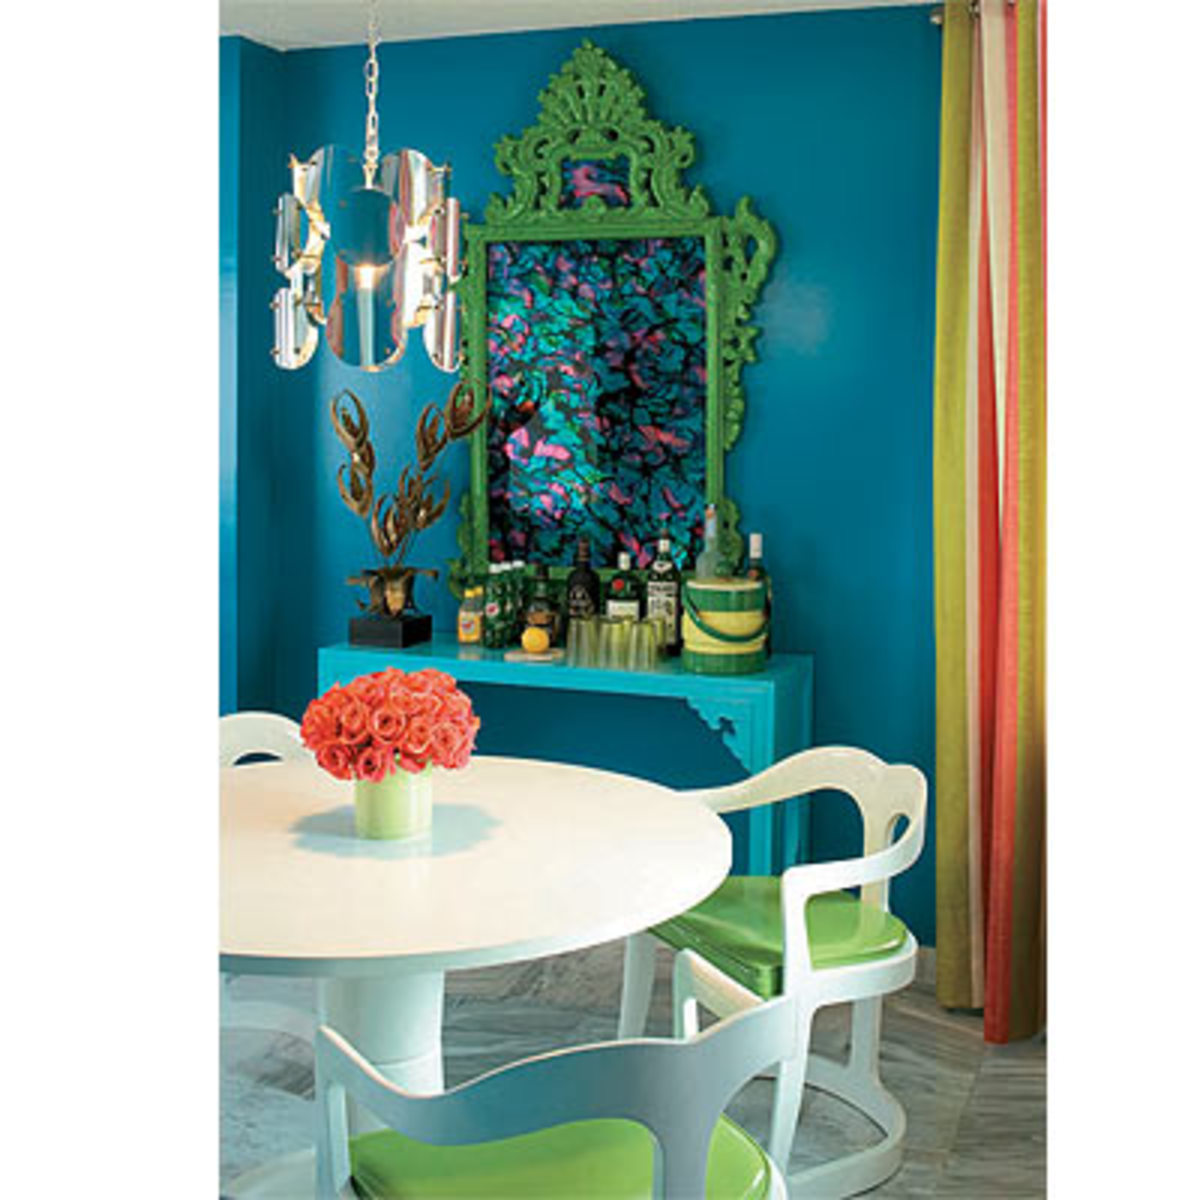 White to off-white furnitures with a blend of coral, green, and yellow adds character to a turquoise room.